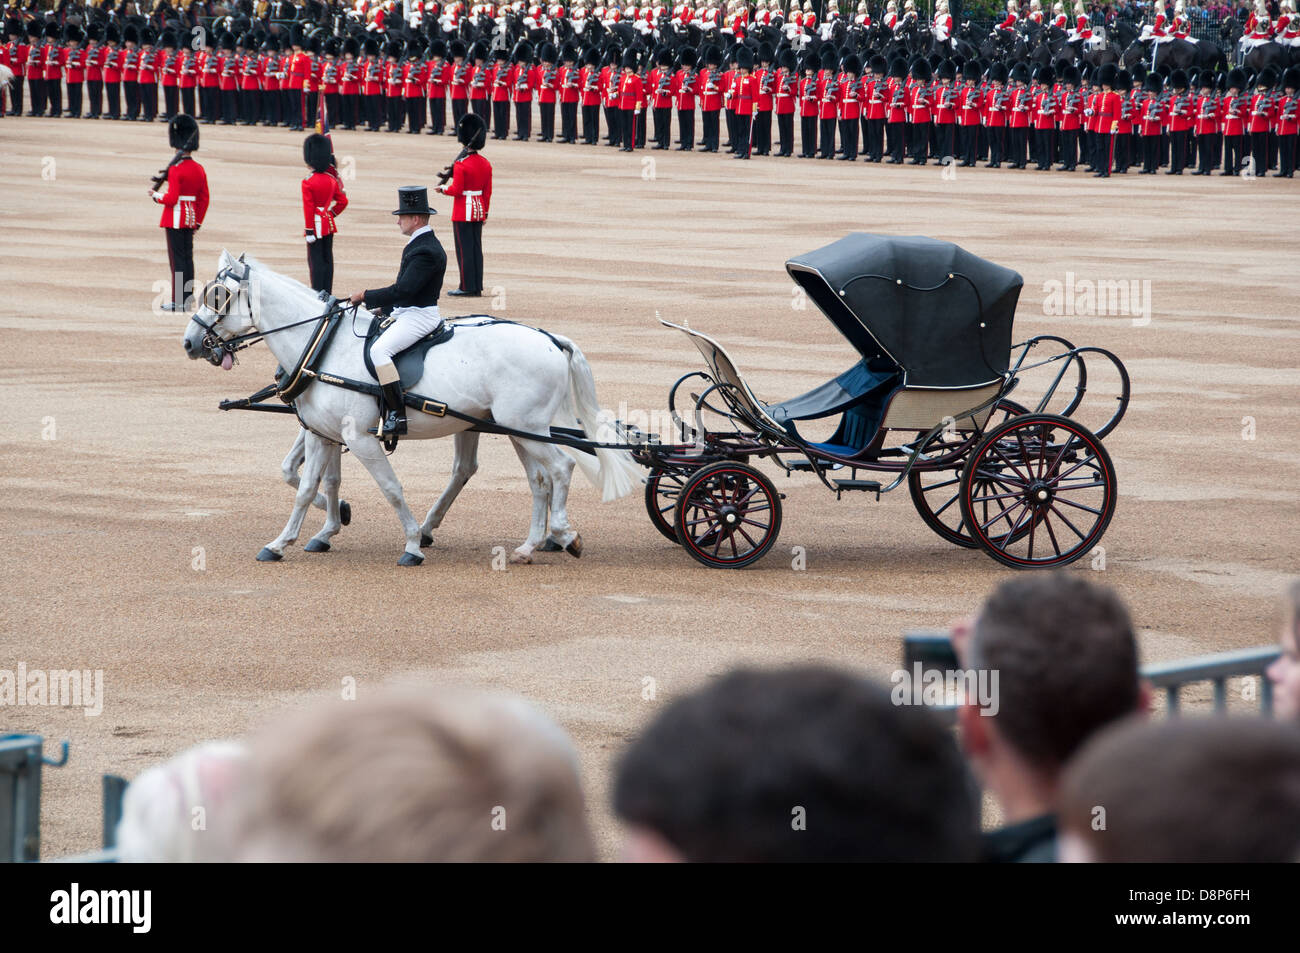 Rehearsal of the Queen's birthday parade, The Major General Review at the Horse Guards - Stock Image